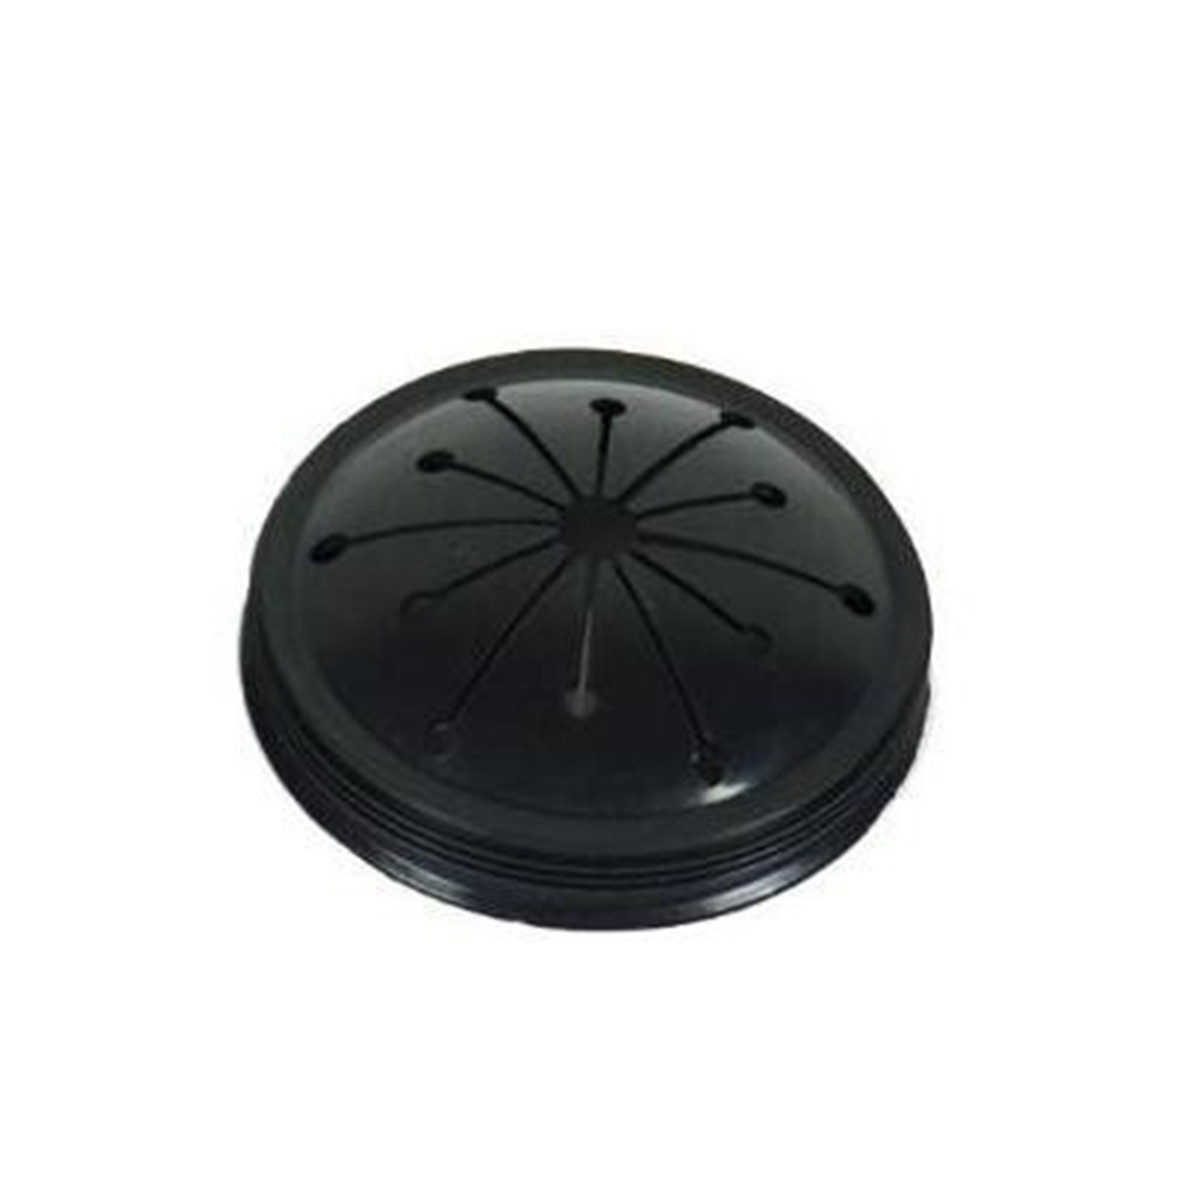 Replacement Garbage Disposal Unit Stopper Splash Guard For